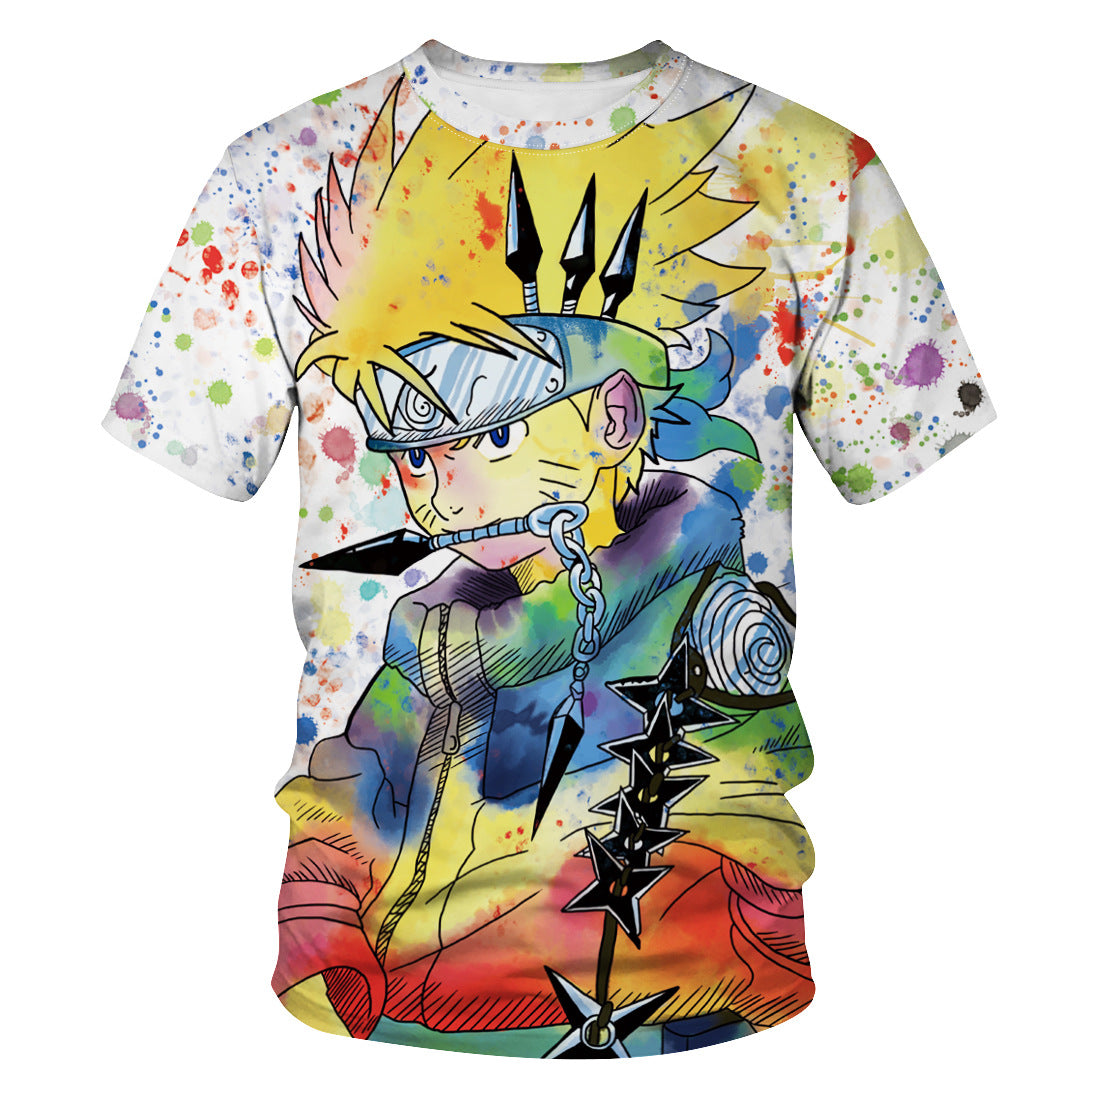 Naruto Short Sleeve T-shirt